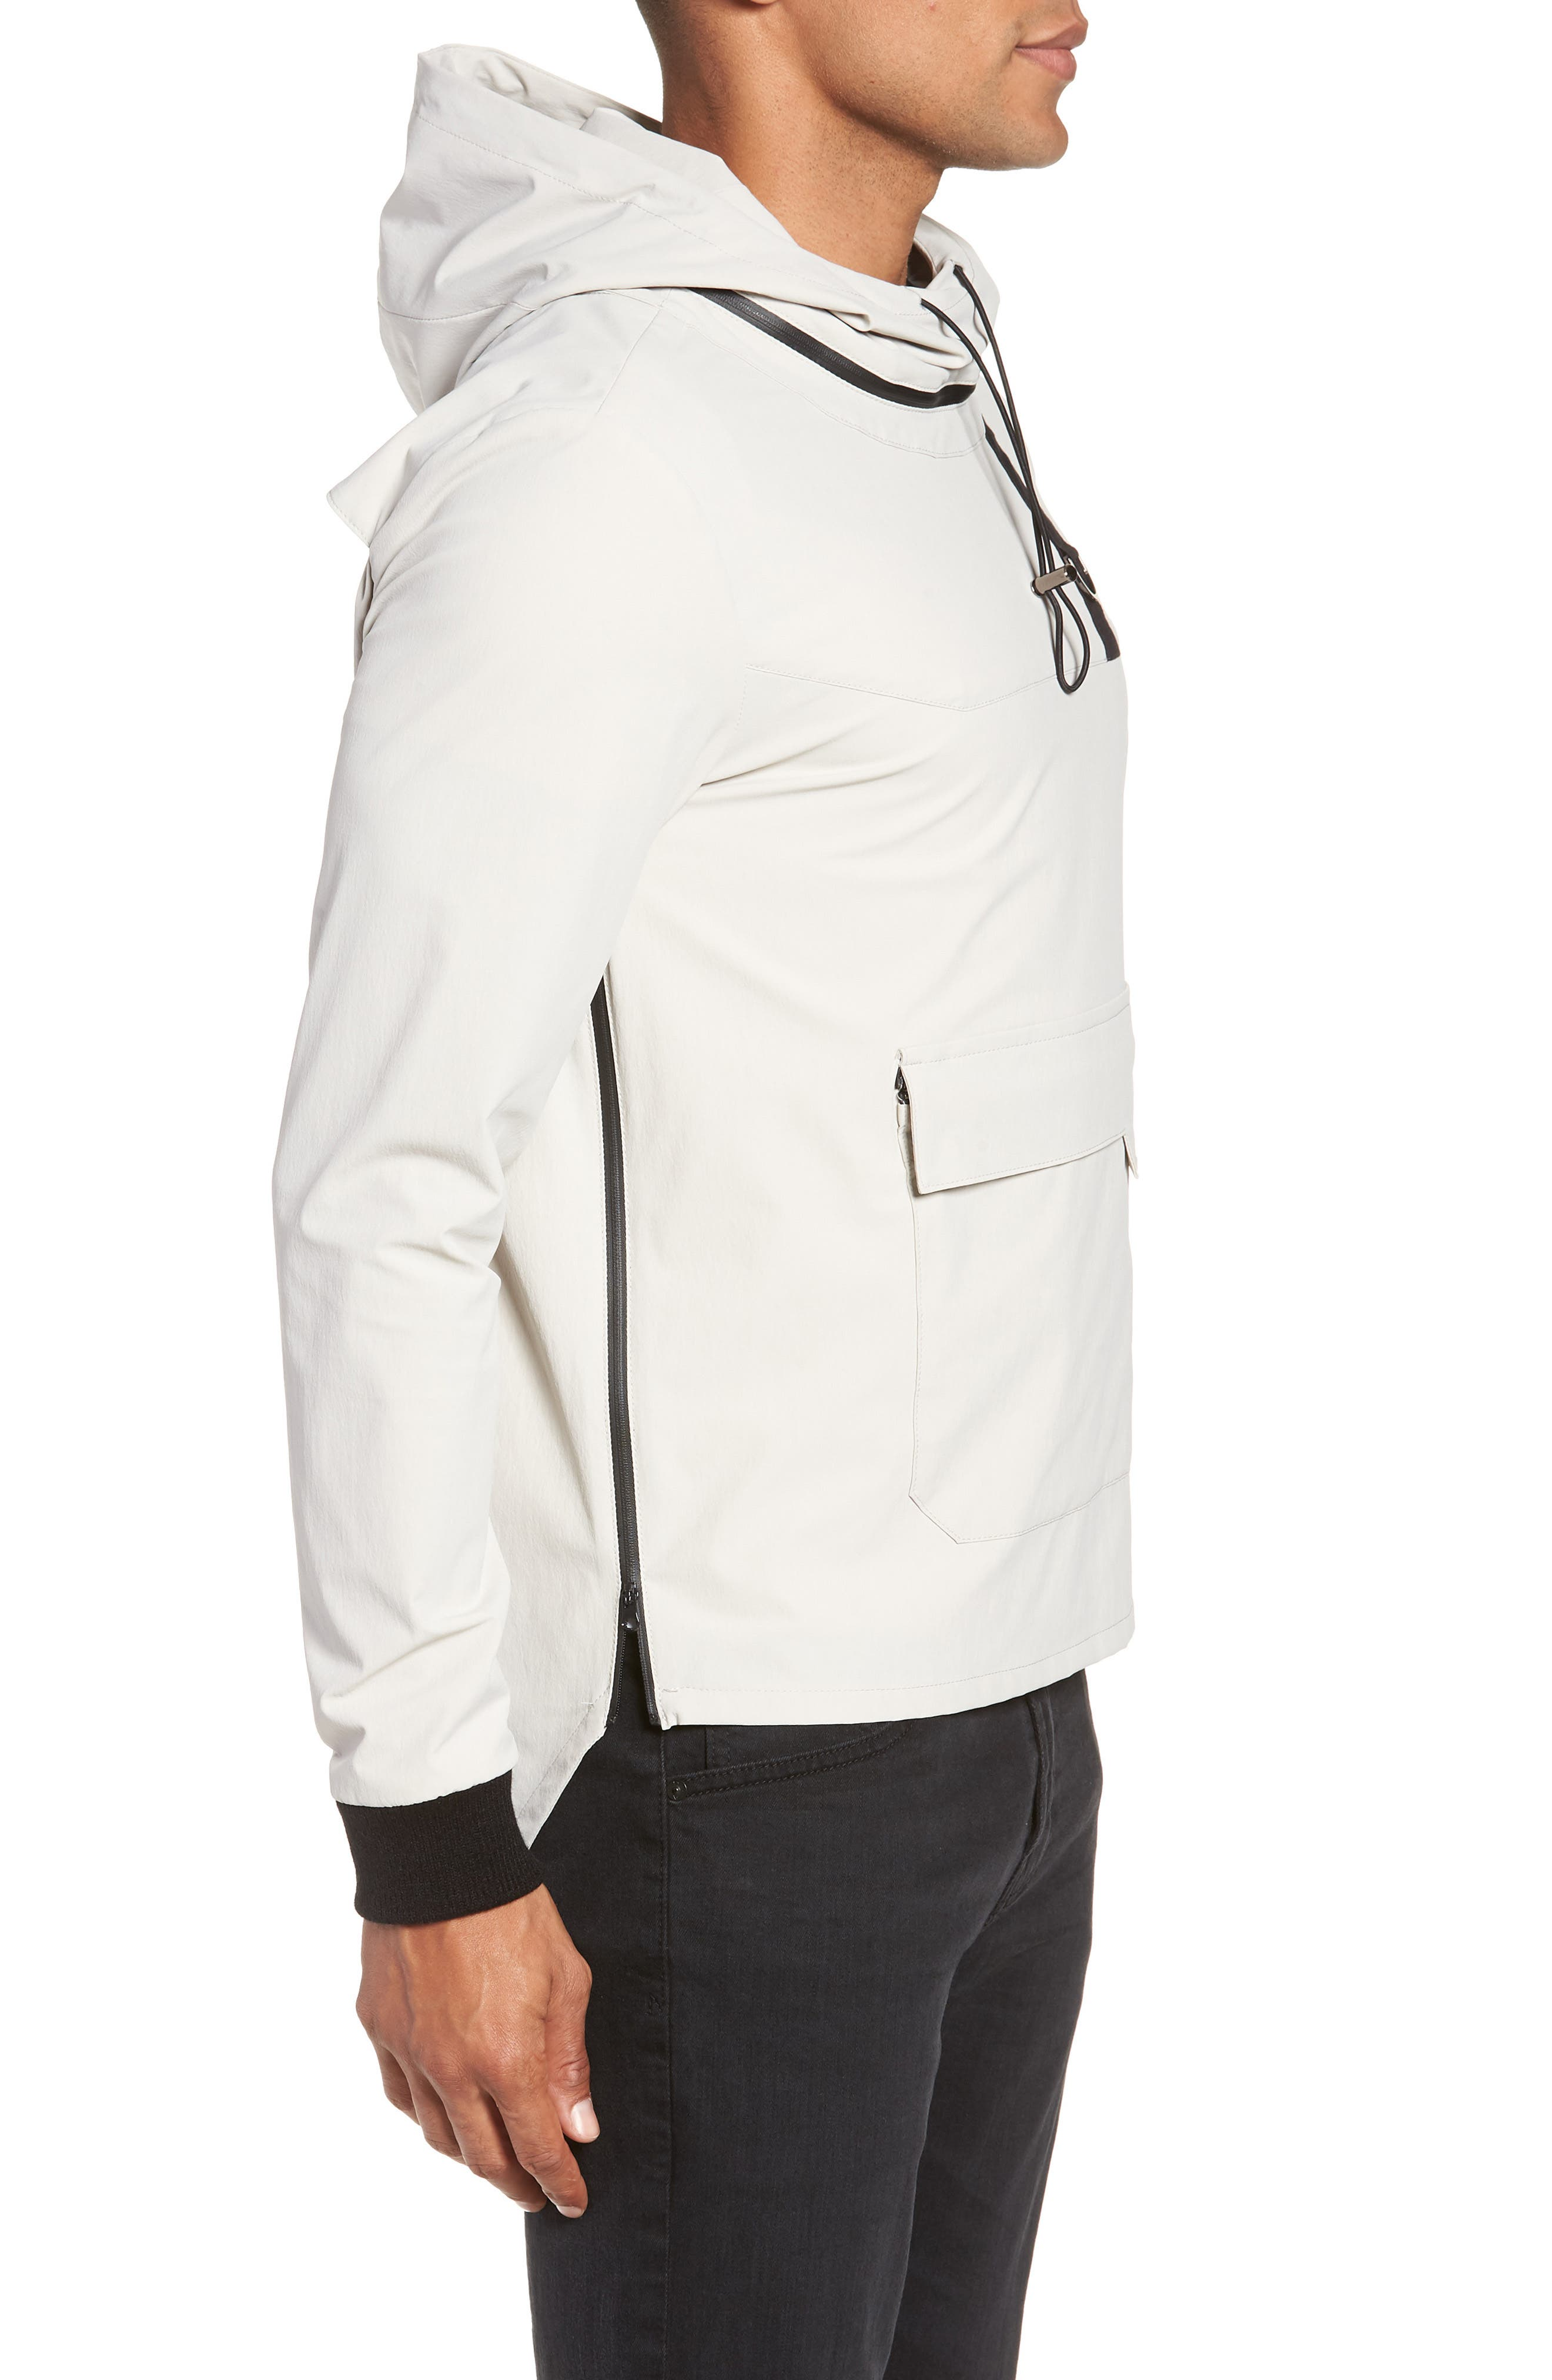 Pullover with Removable Hood,                             Alternate thumbnail 3, color,                             270